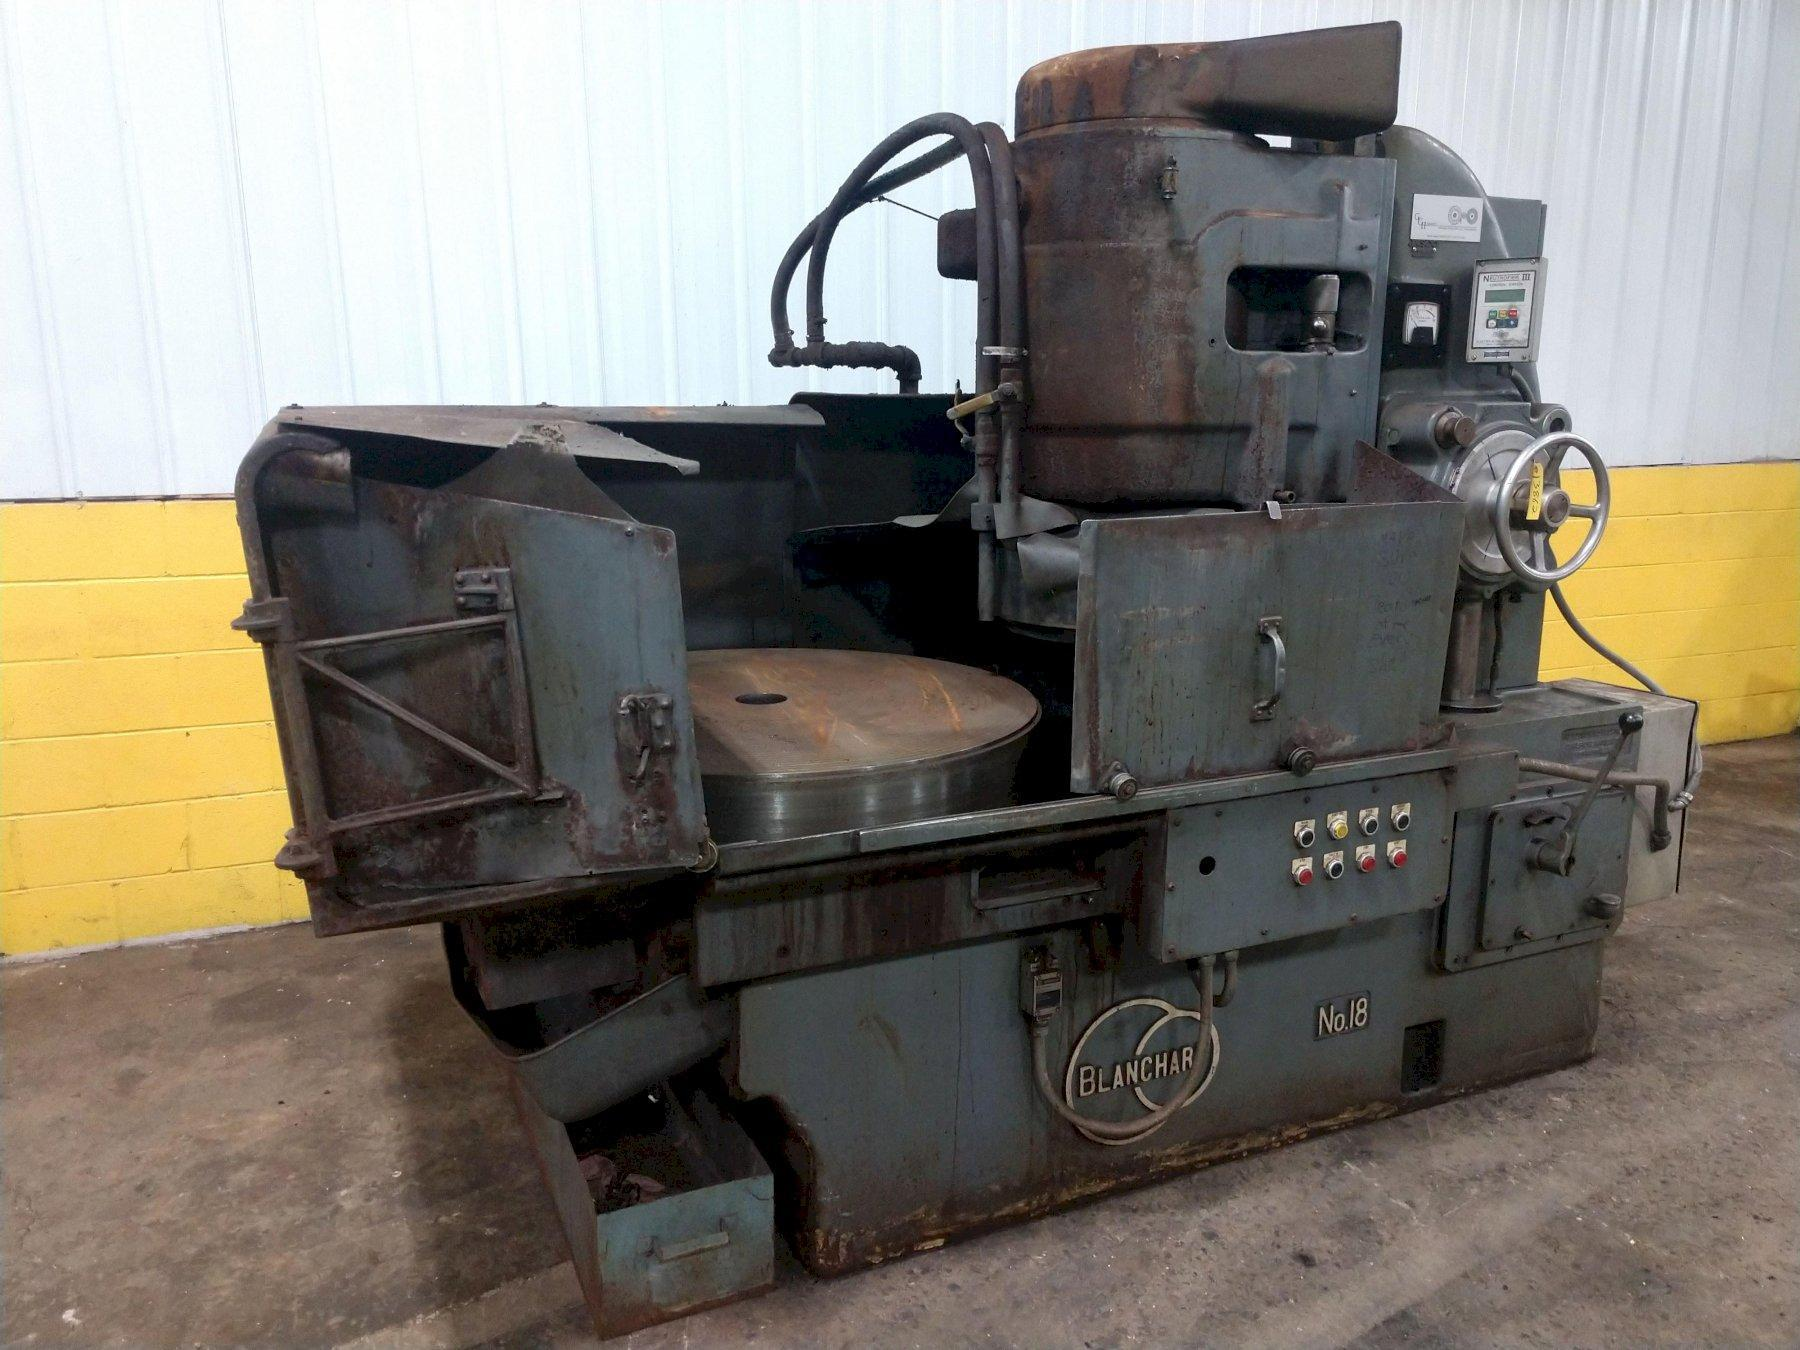 "36"" BLANCHARD MODEL #18 ROTARY SURFACE GRINDER: STOCK 13862"